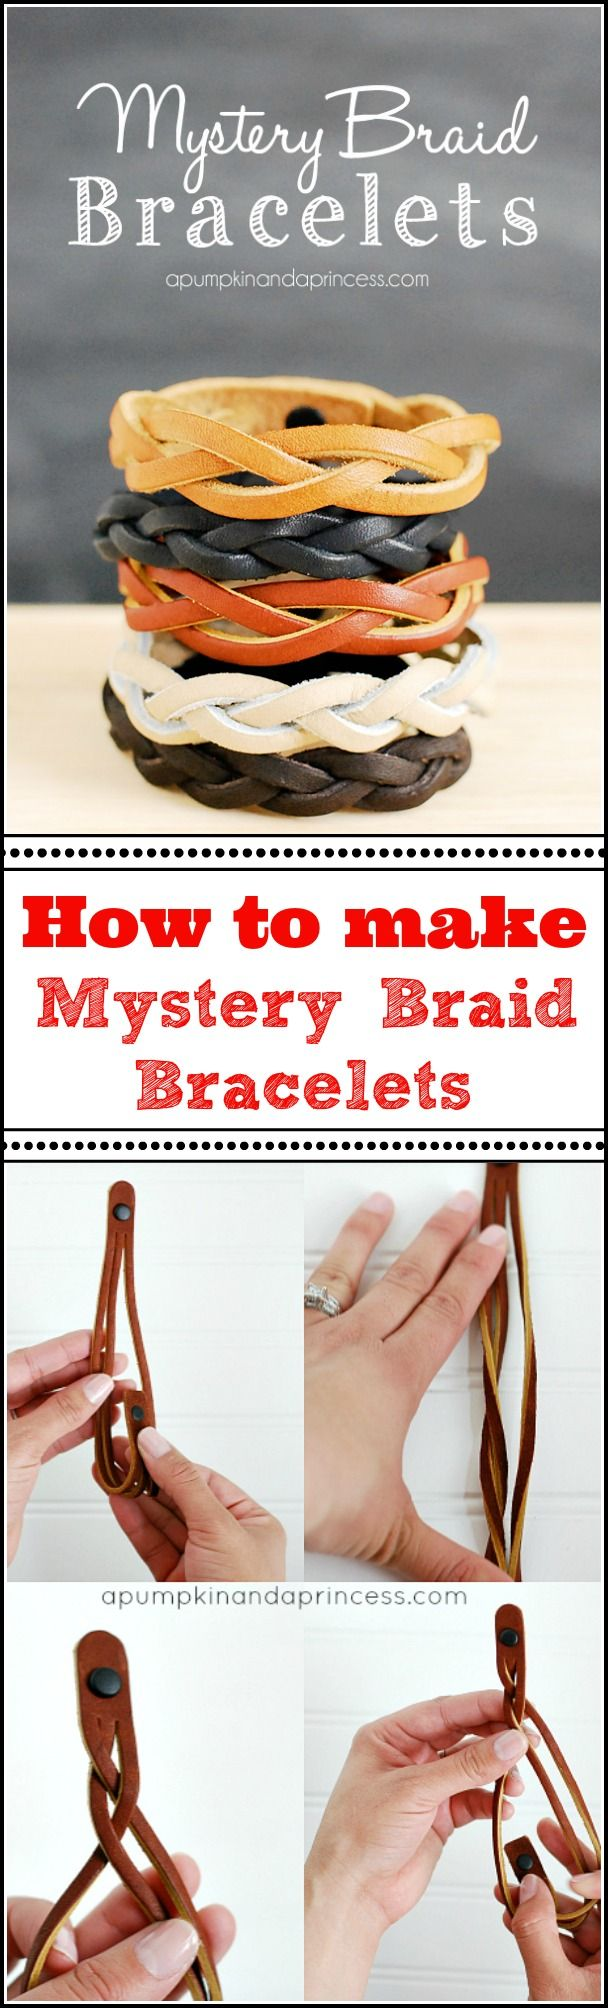 How to make a Mystery Braid Bracelet - A Pumpkin And A Princess: Bracelets Tutorials, Gifts Ideas, Gift Ideas, Mystery Braids, Pumpkin, Braids Bracelets, Handmade Gifts, Leather Accessories Ideas, Leather Bracelets